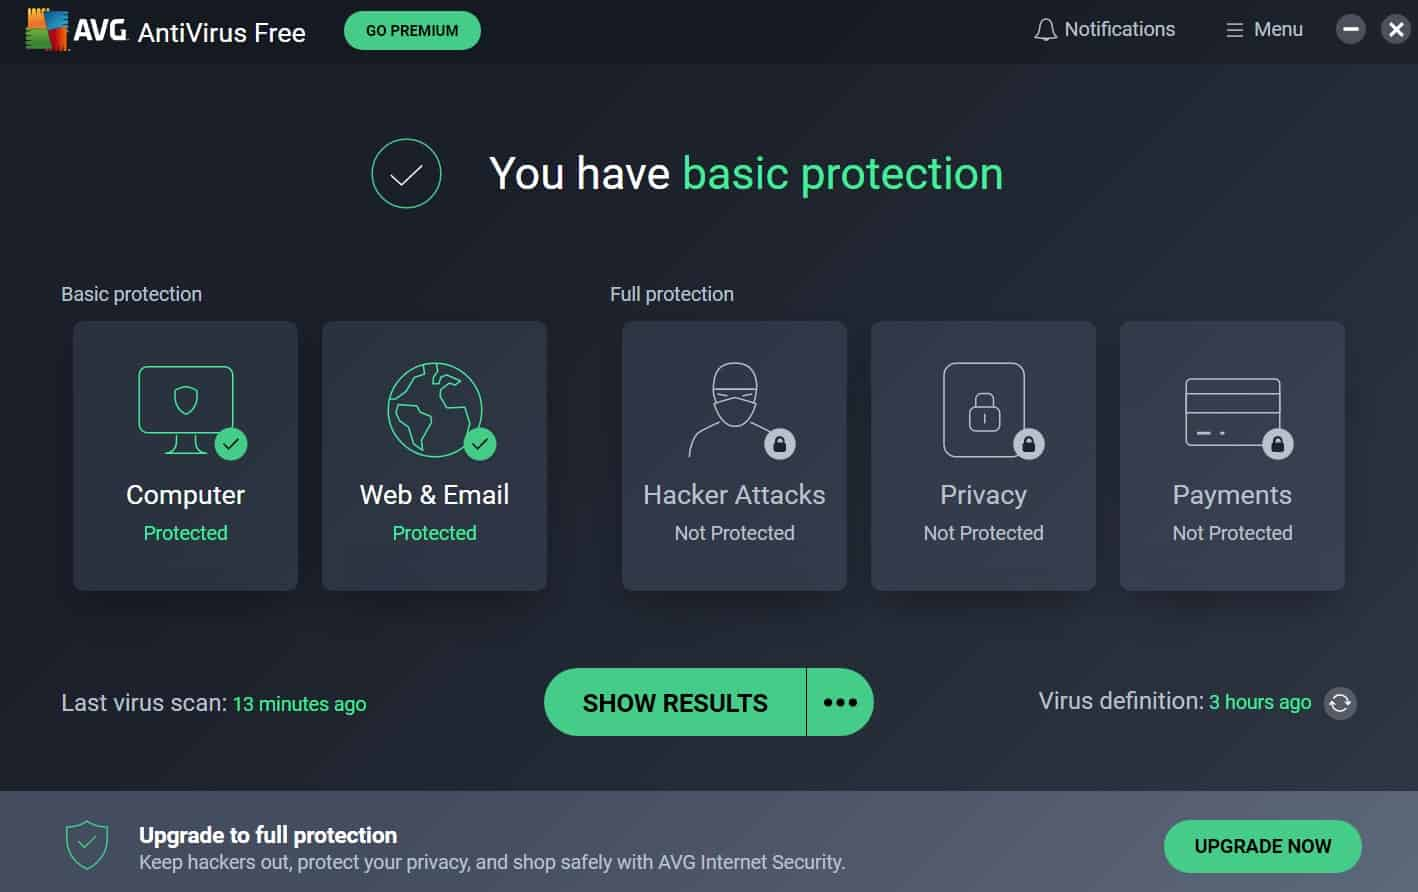 AVG - You Have Basic Protection